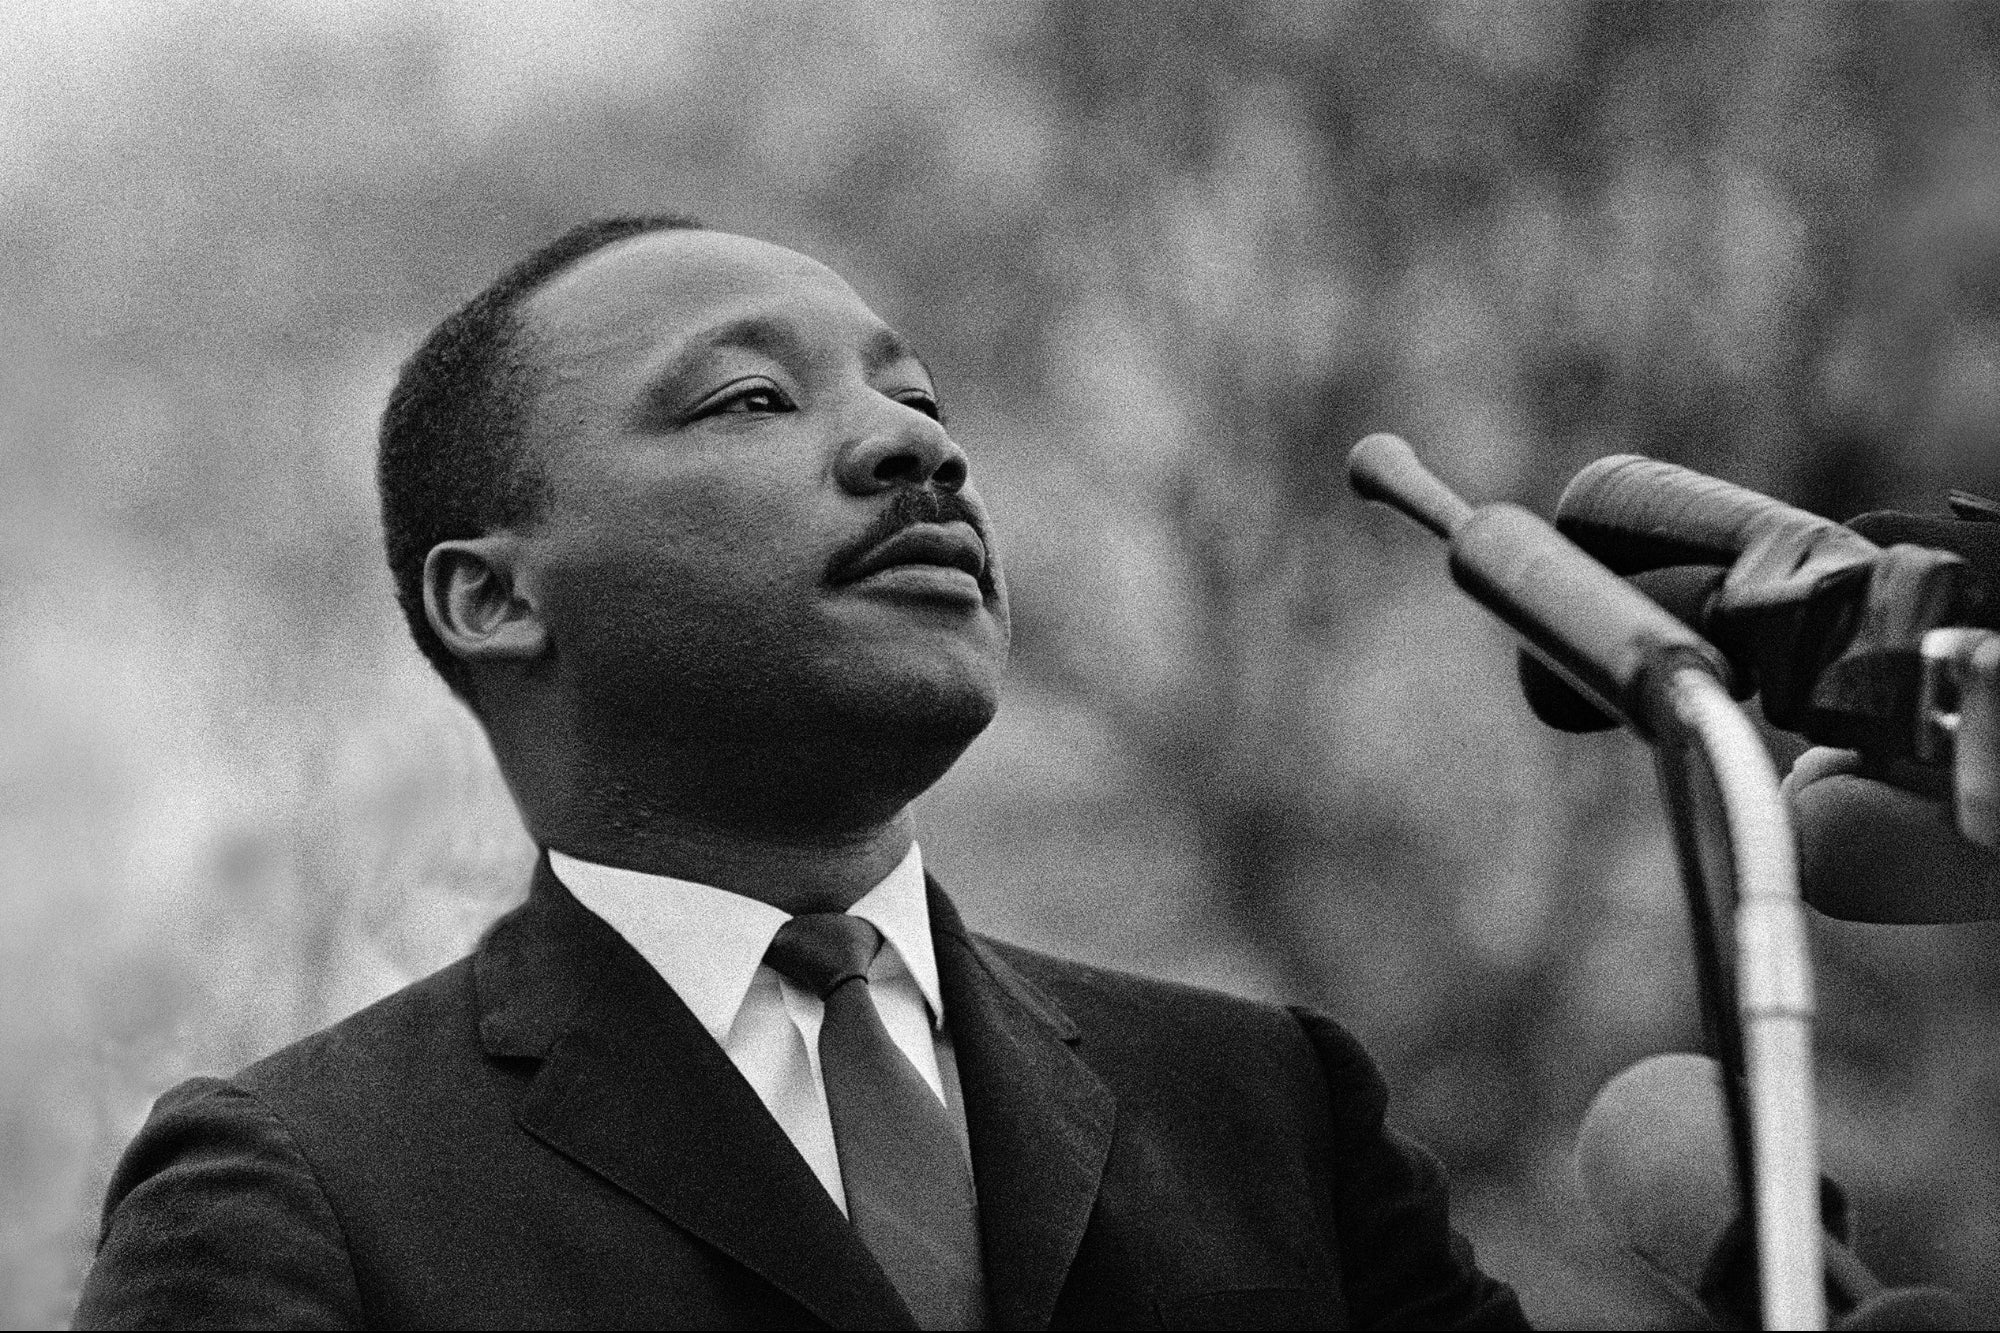 entrepreneur.com - Jordan Minor - How to Watch or Listen to Dr. Martin Luther King, Jr.'s Speeches Online